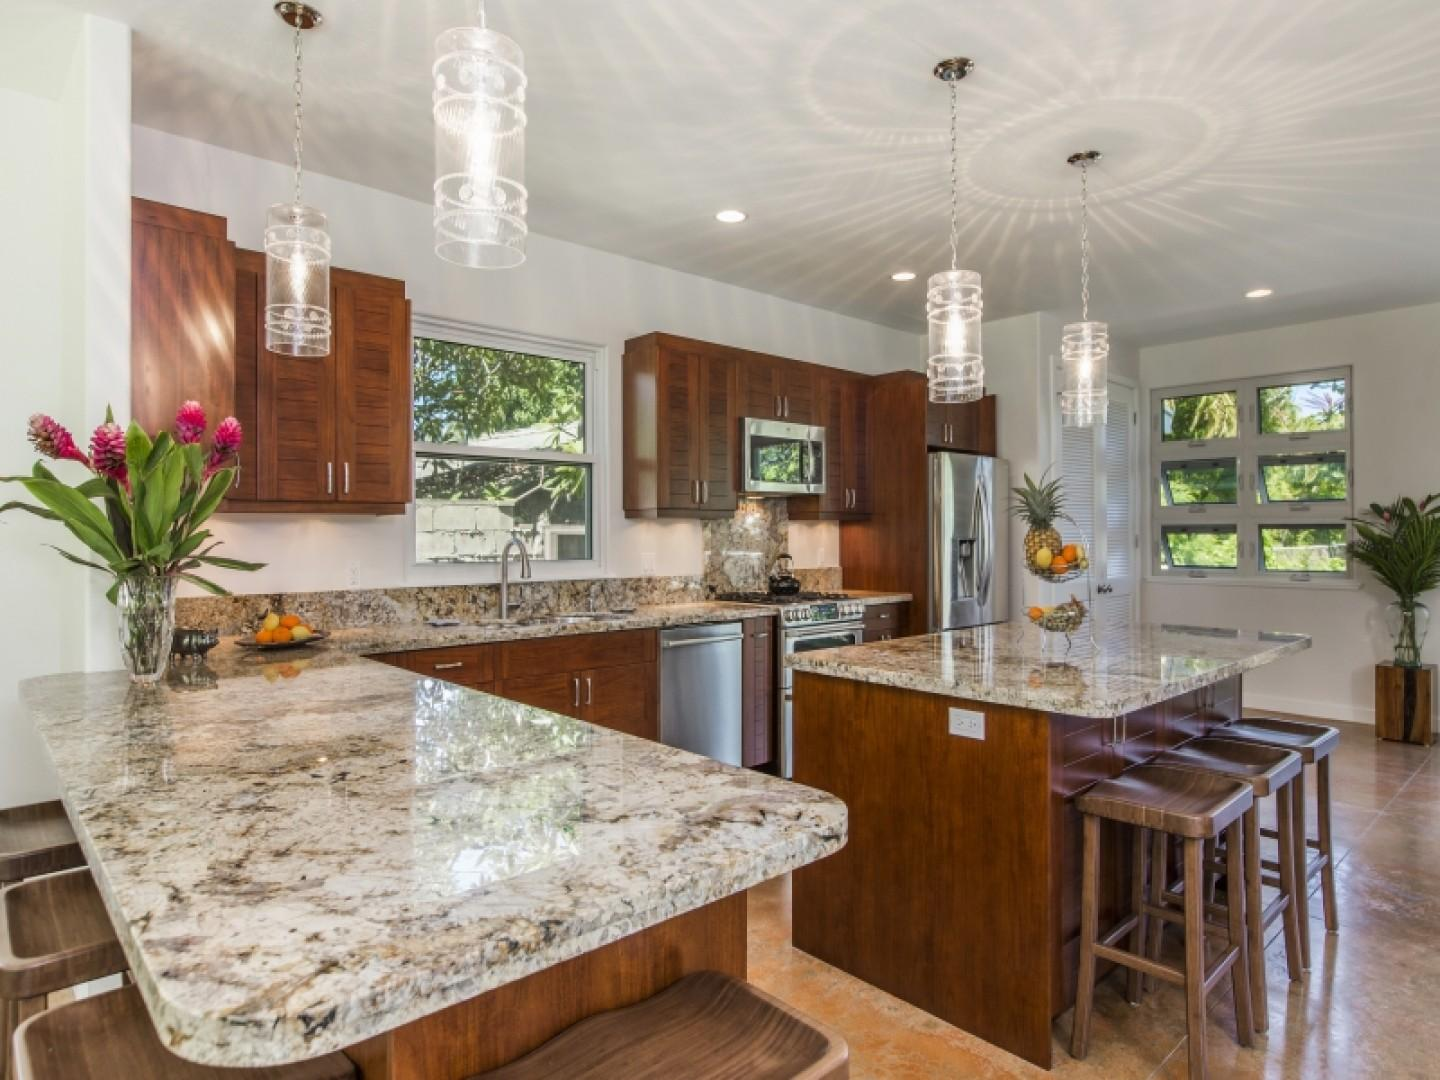 Beautiful granite counters with ample seating.